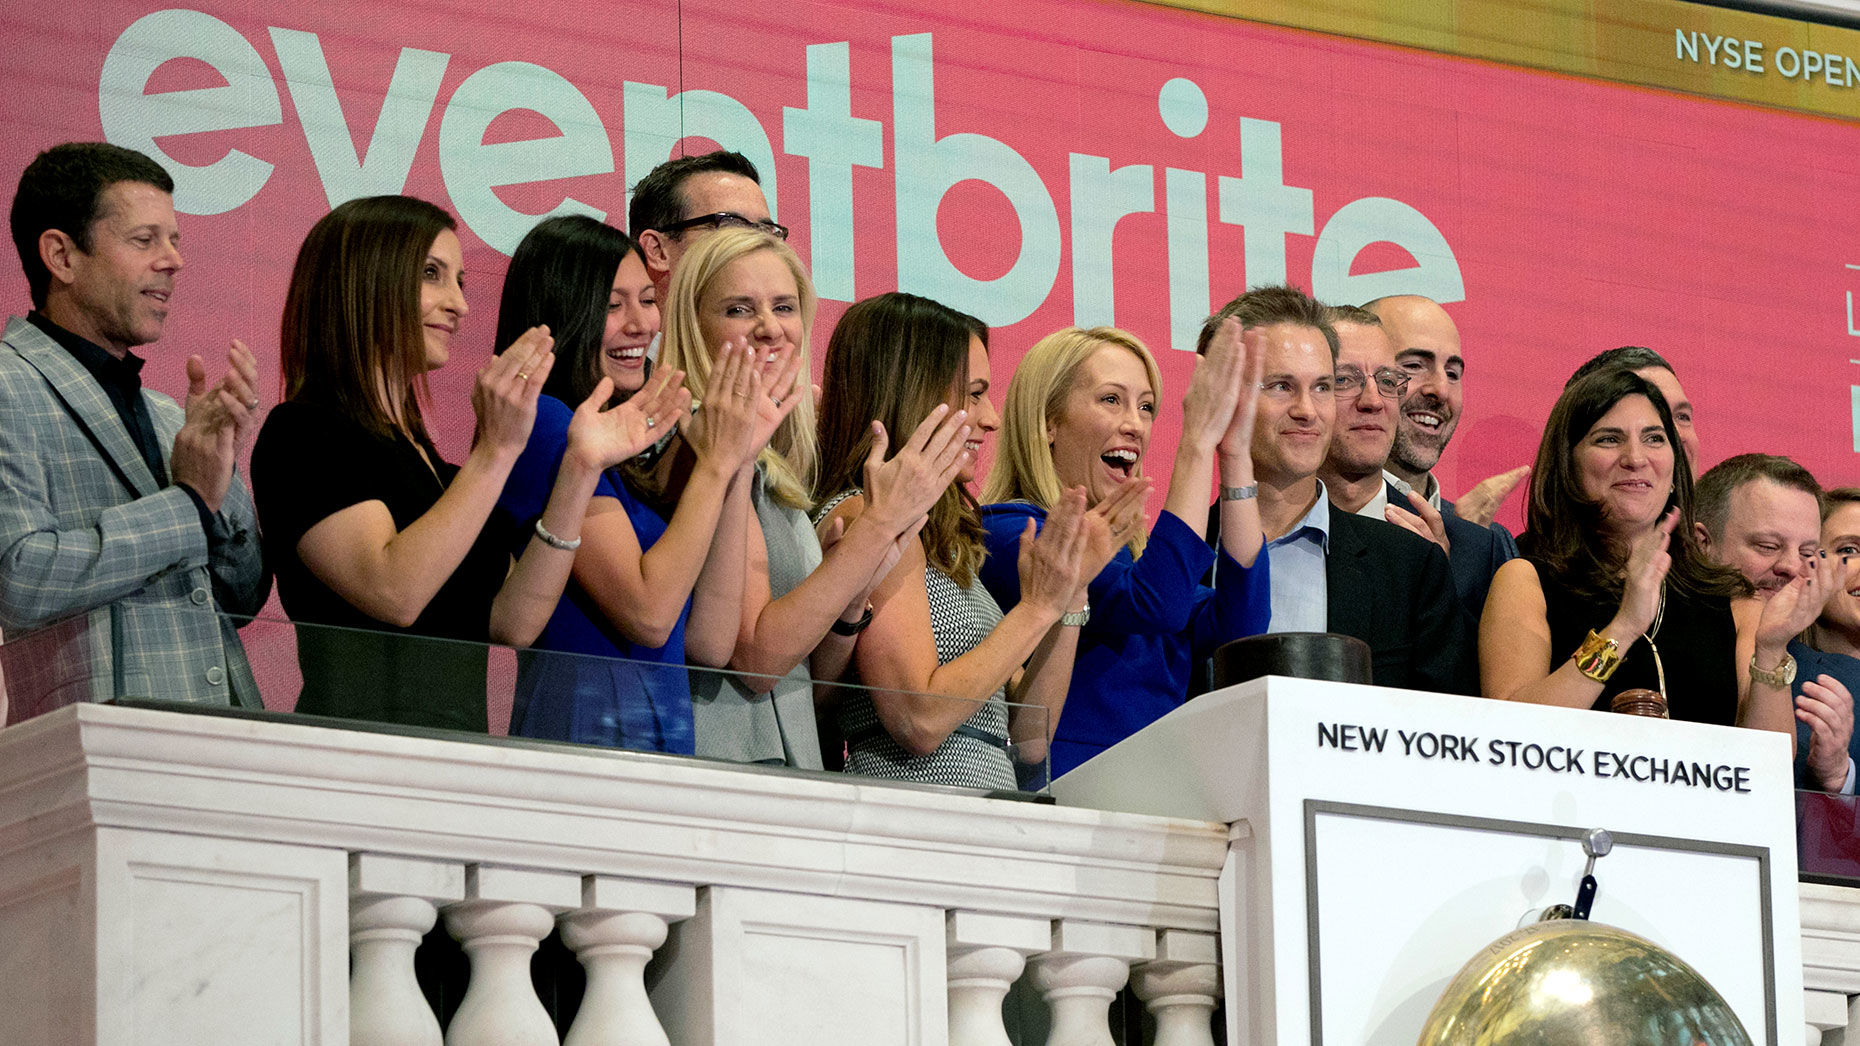 Eventbrite CEO Julia Hartz, center, and Kevin Hartz, right center, her husband and company chairman, celebrate as she rings the New York Stock Exchange opening bell, Thursday, Sept. 20, 2018, to mark the company's IPO. Photo by AP.